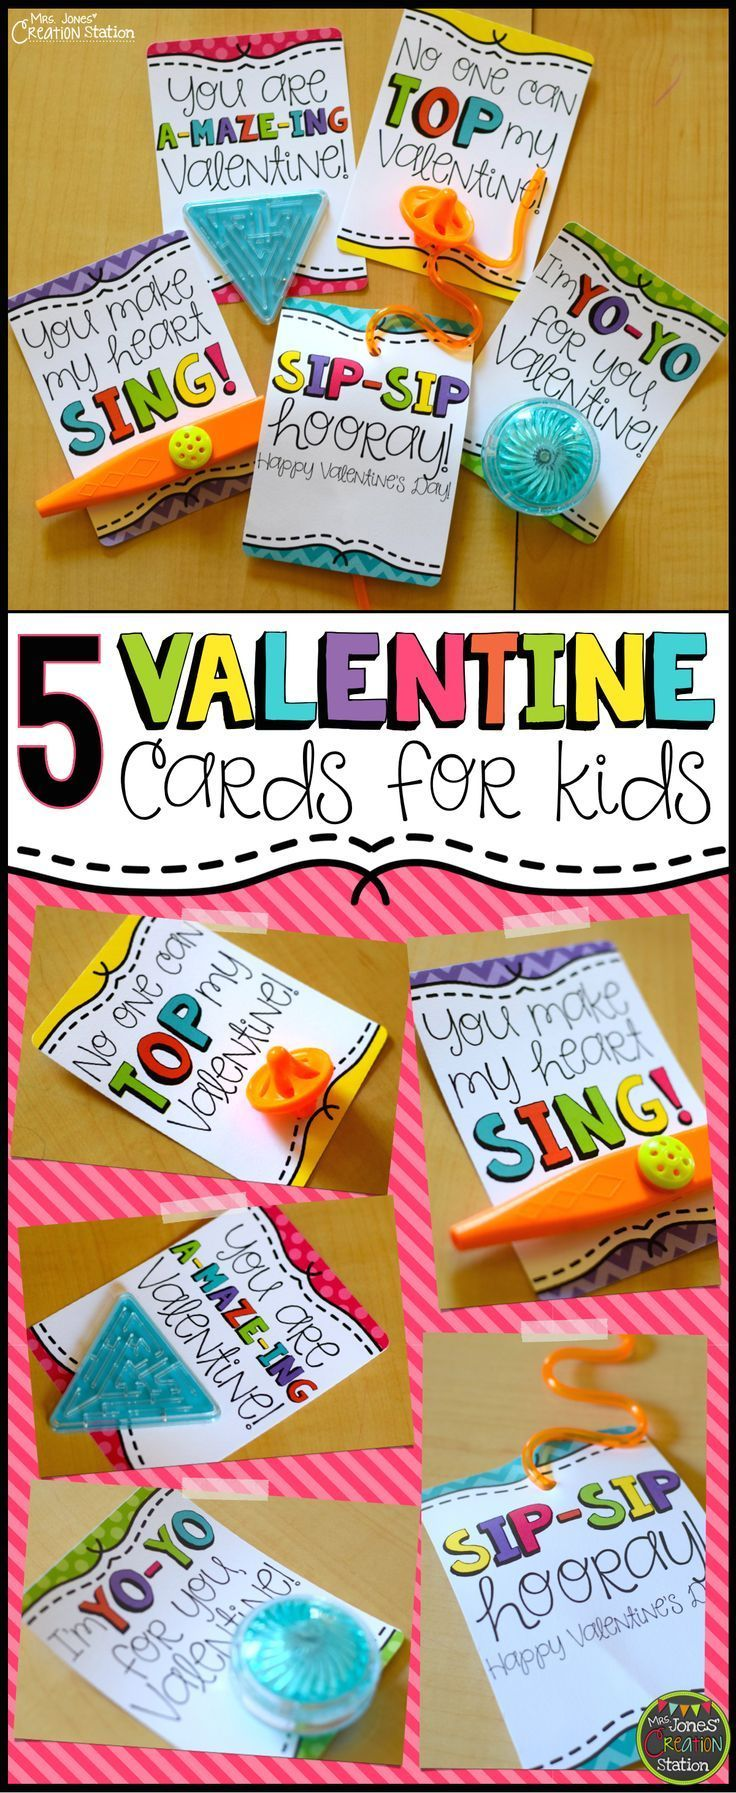 5 Valentine's Day Cards for Kids | FREE Valentine Cards to print - perfect for kids!